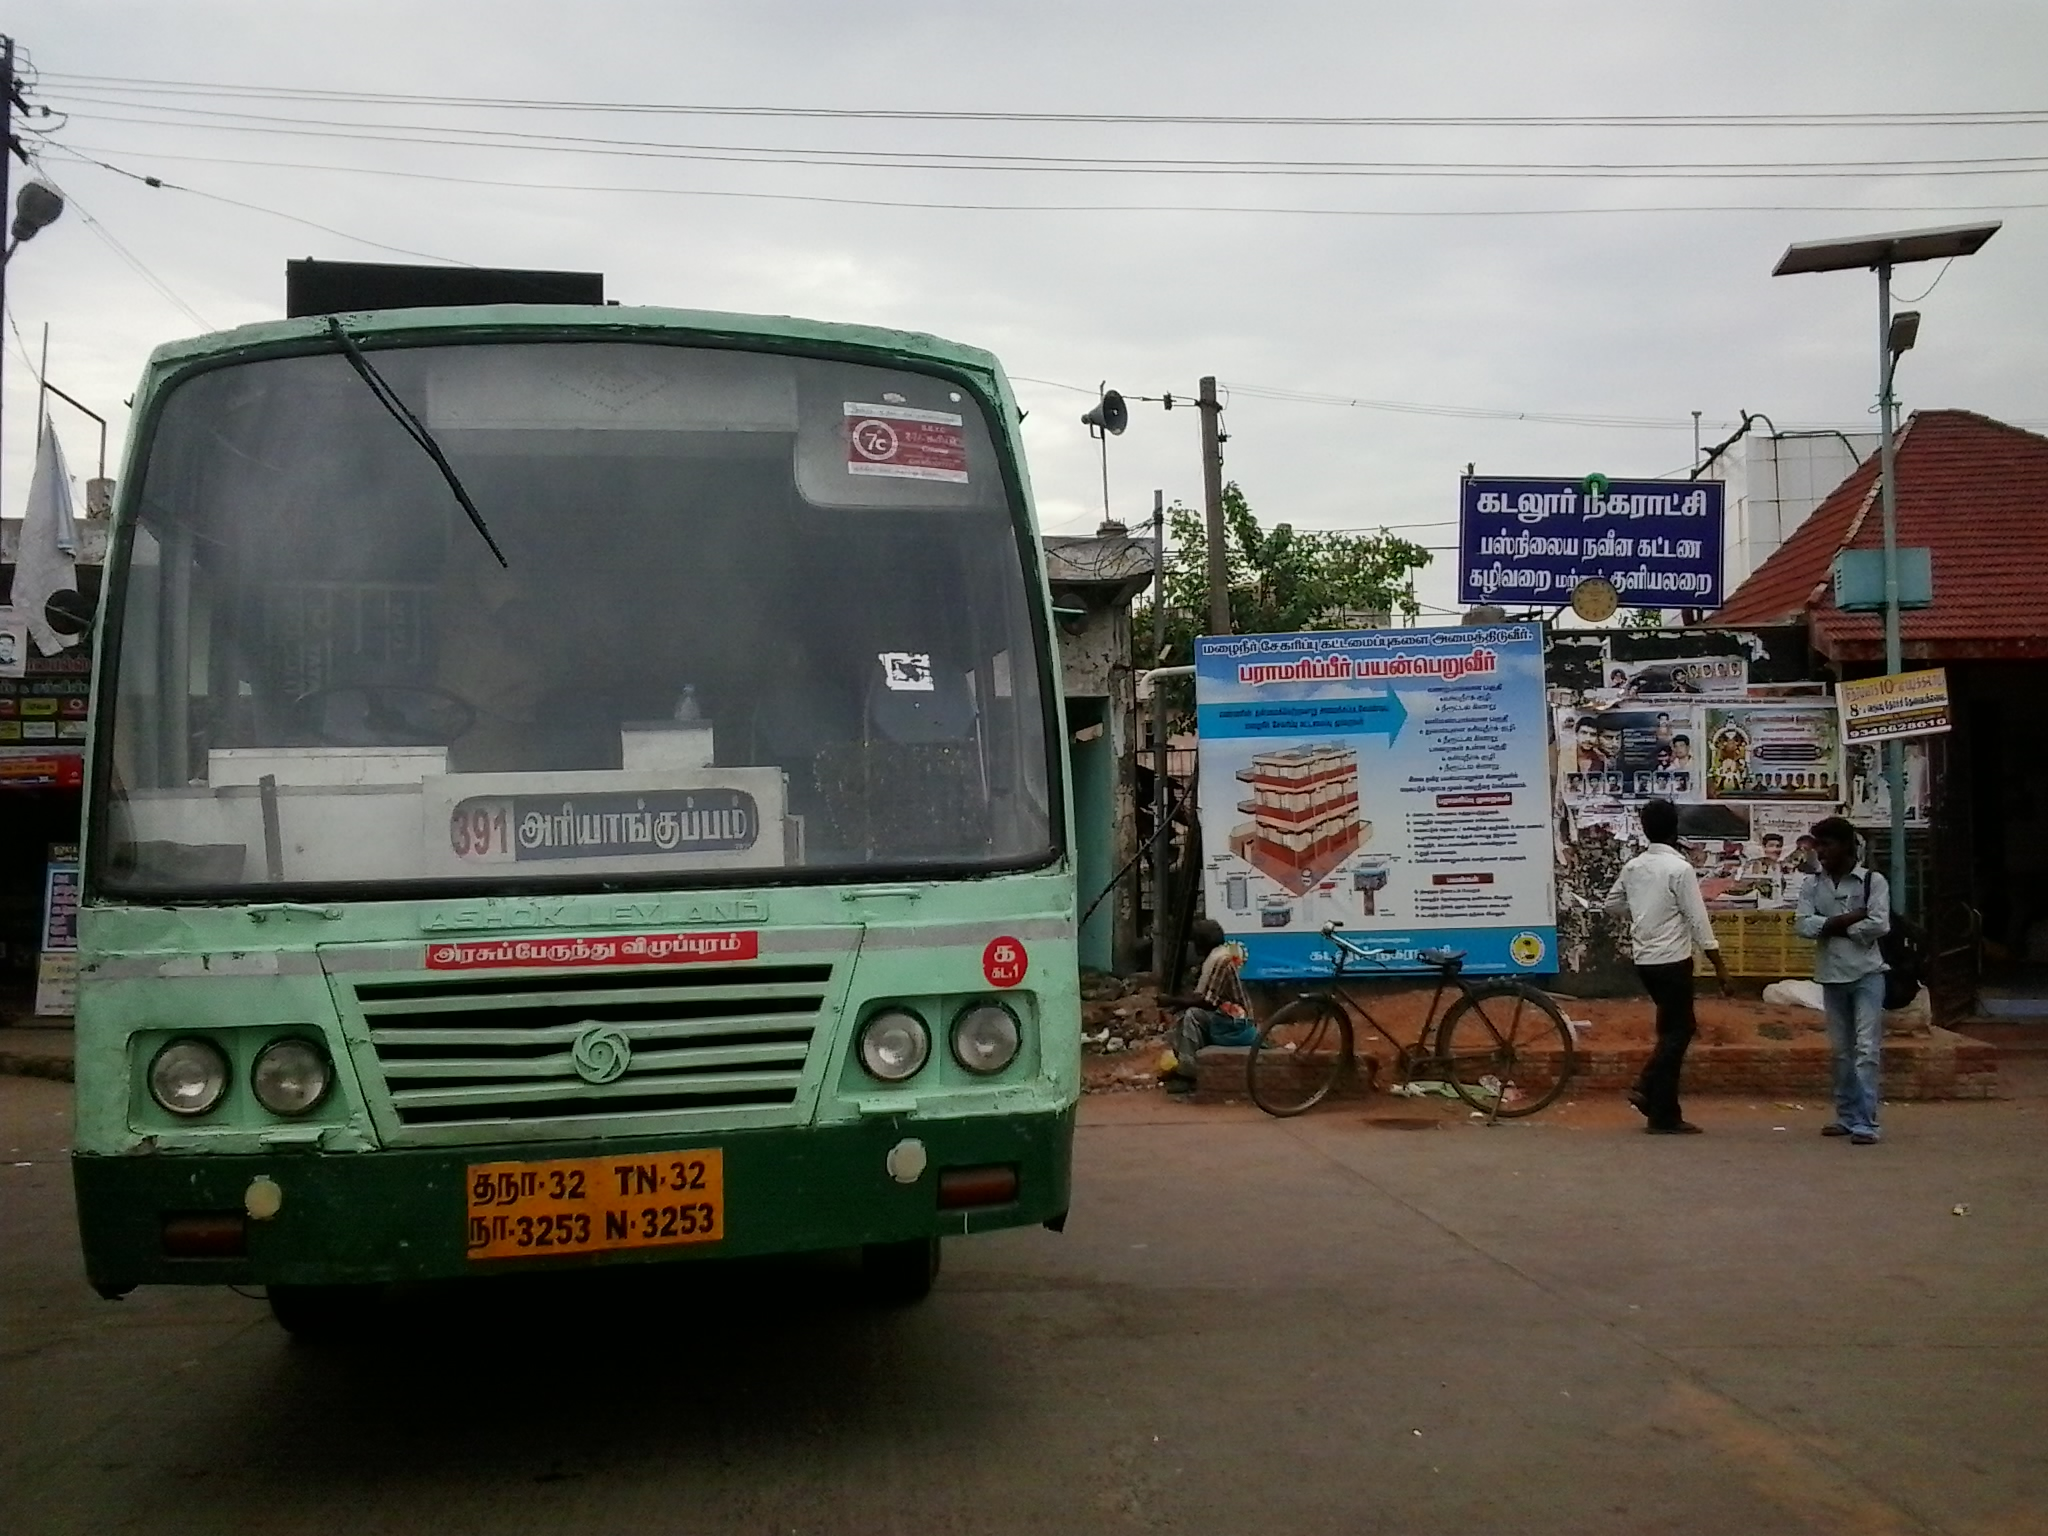 Cuddalore–Ariyankuppam Bus Route - Wikipedia